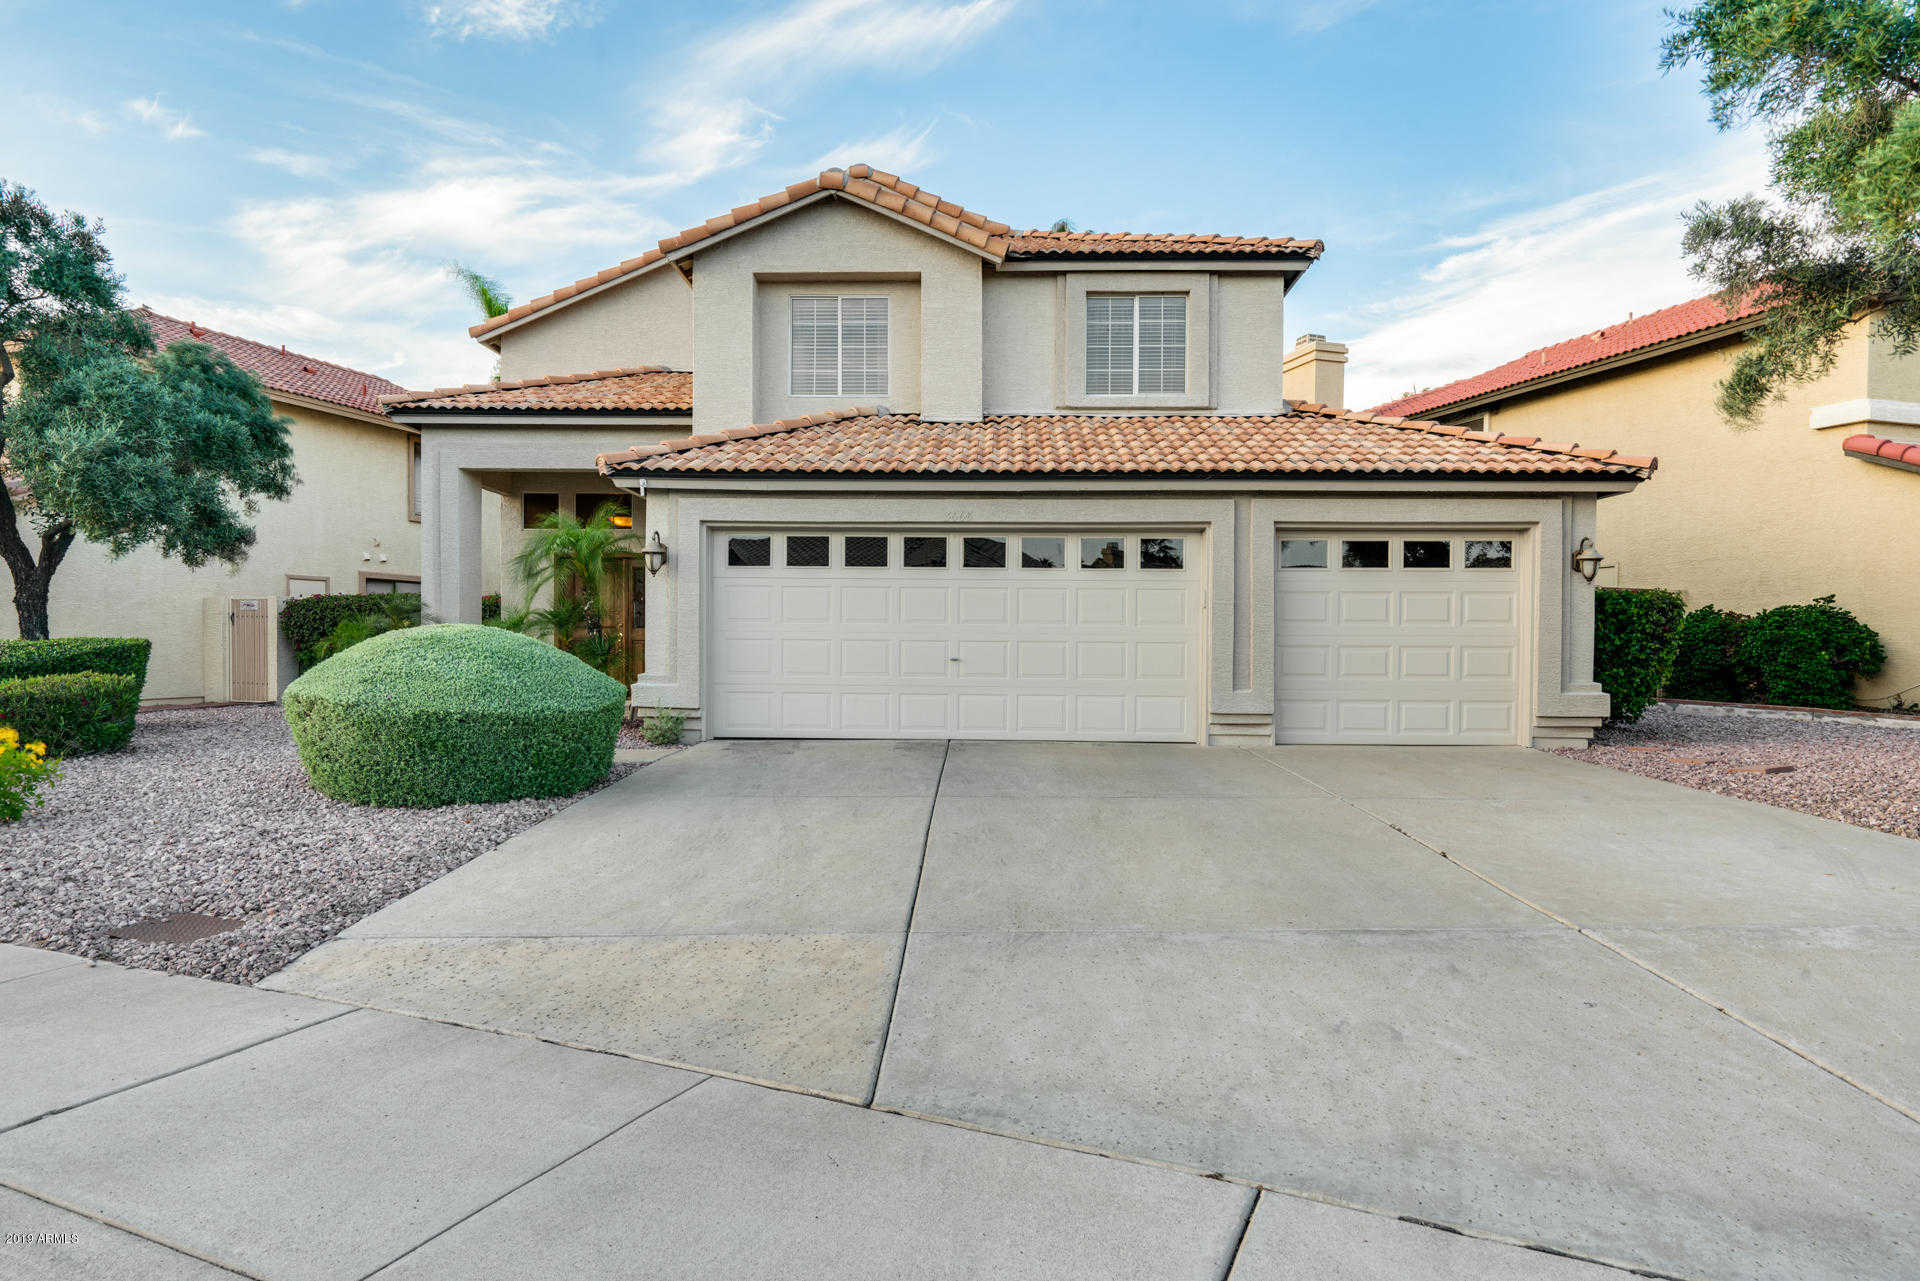 $439,000 - 3Br/3Ba - Home for Sale in Arrowhead Lakes, Glendale